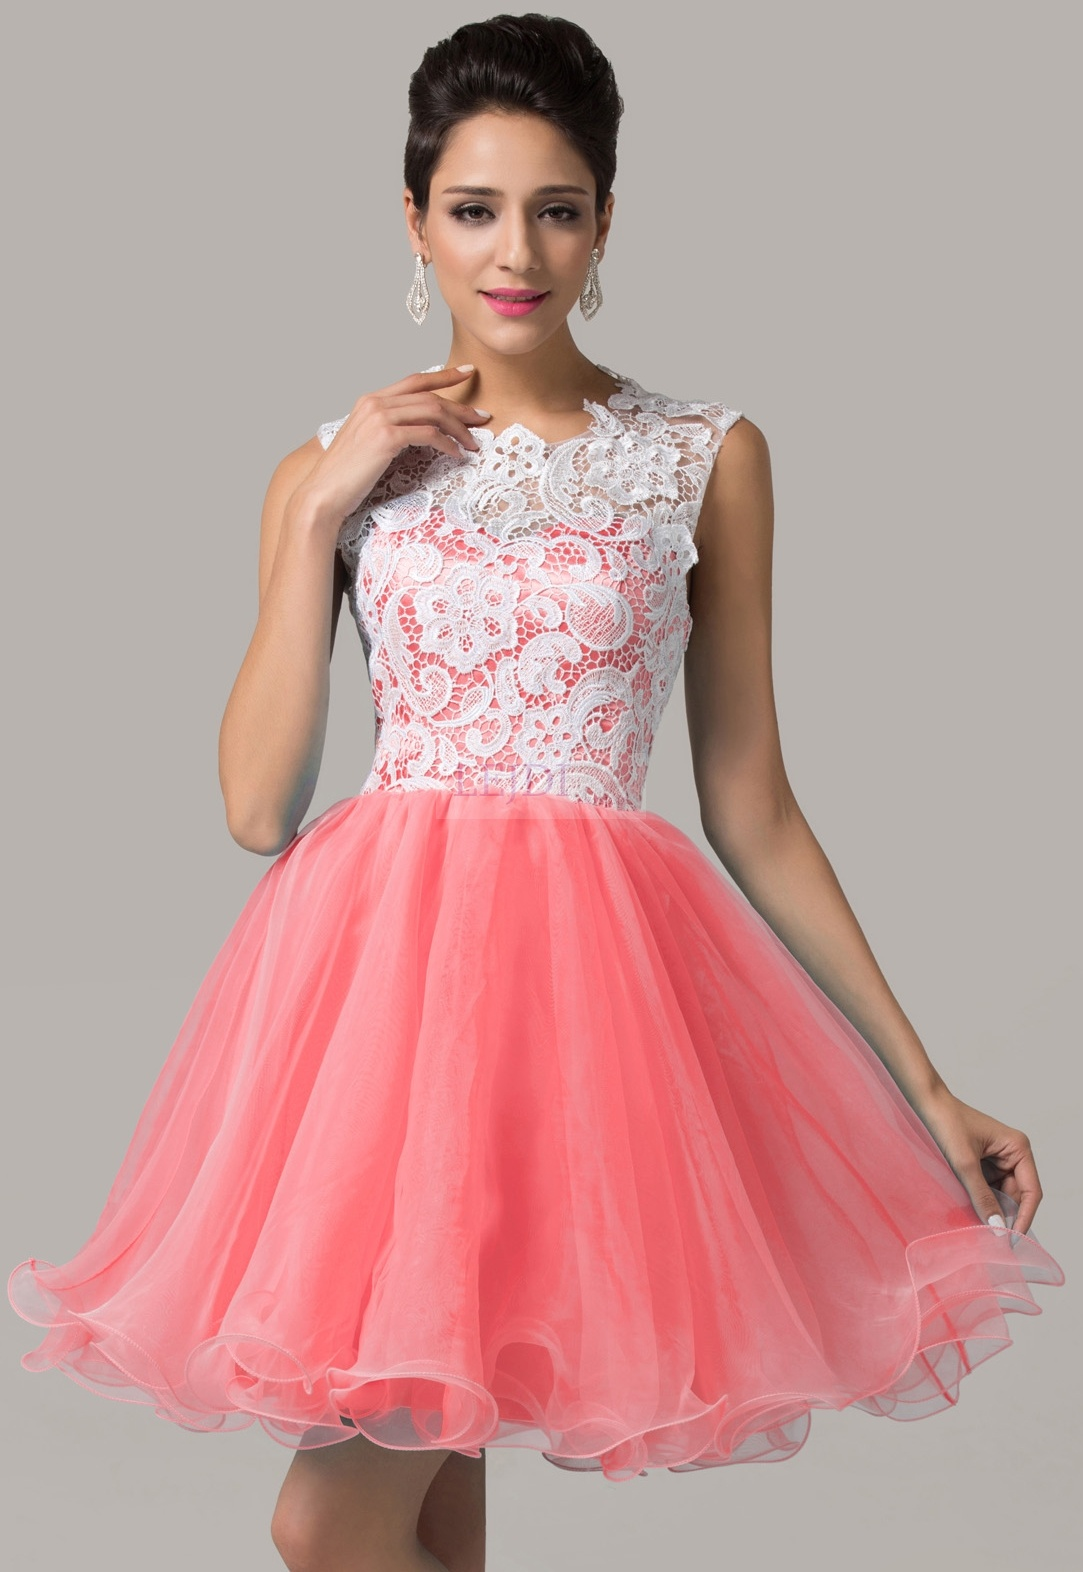 Dresses Tuxedos and Womens Wear  Formal Fashions Inc